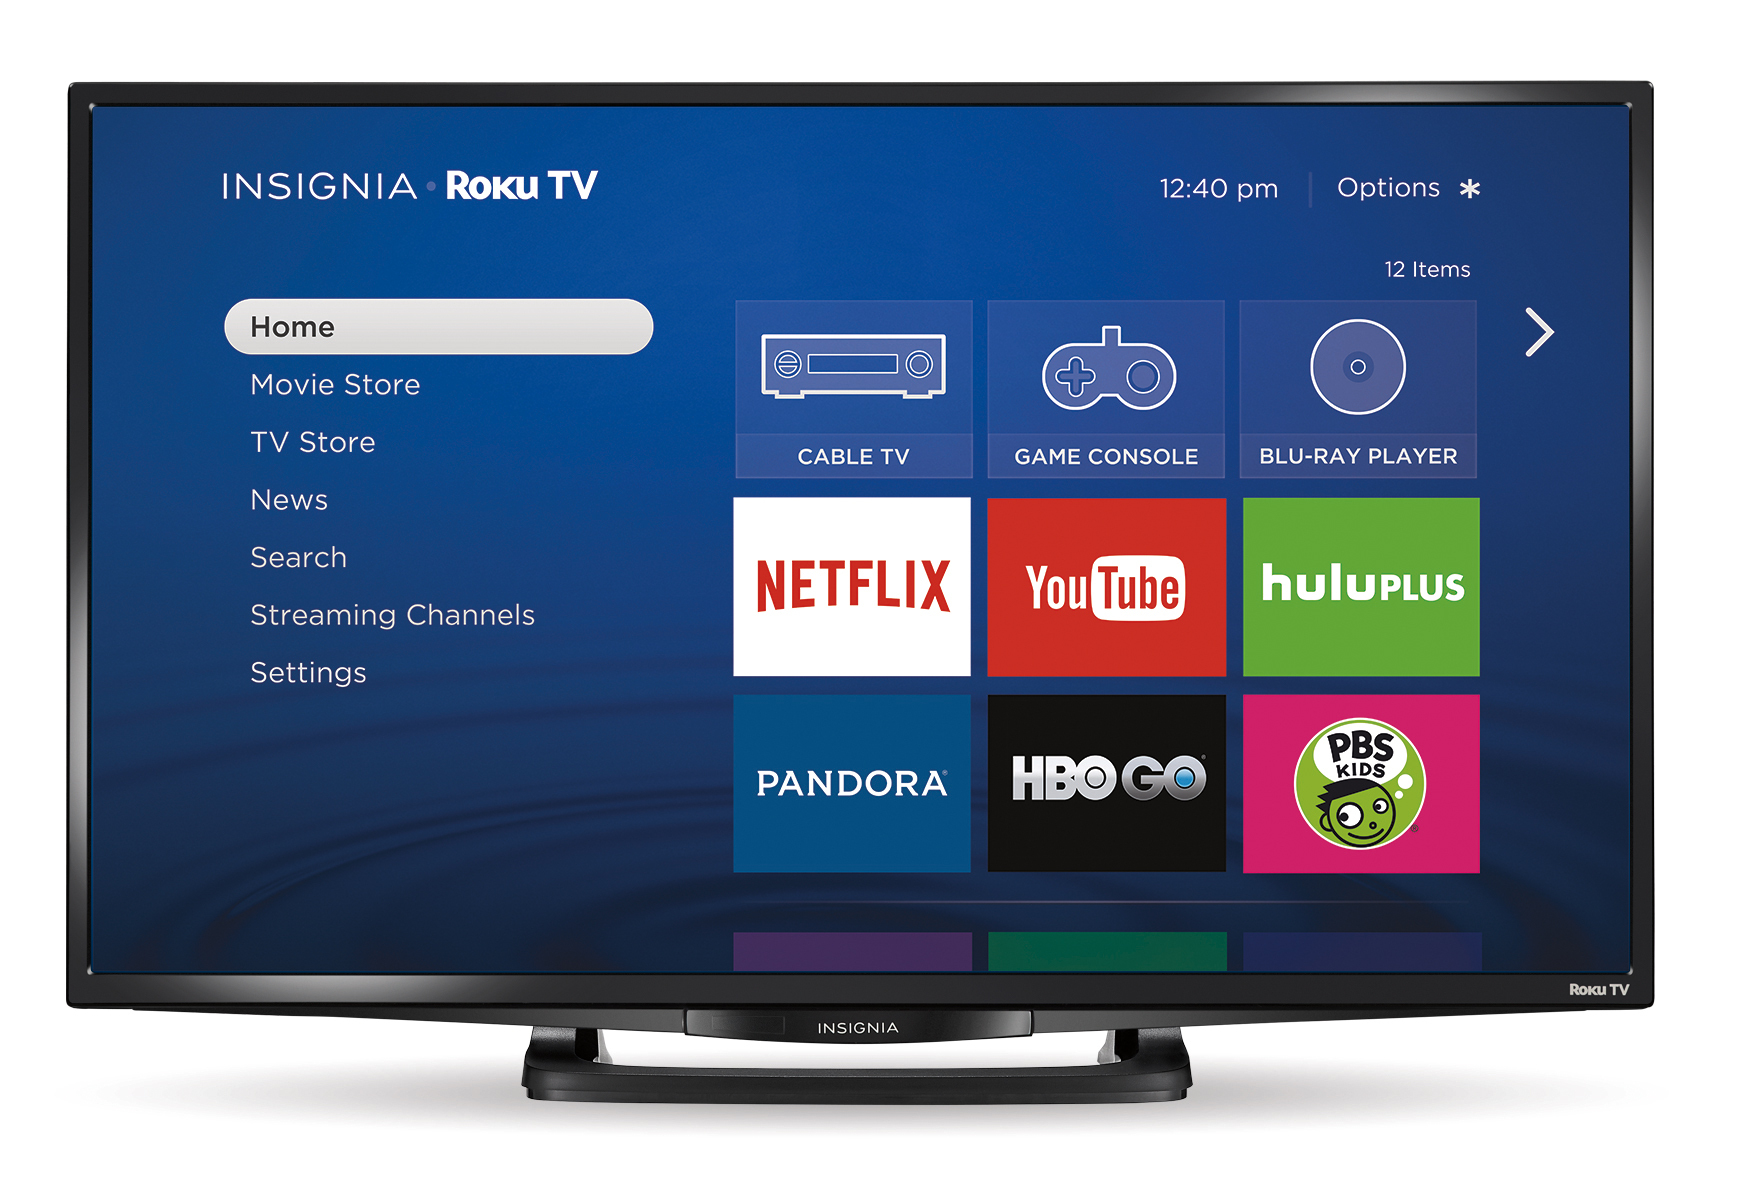 roku announces insignia roku tv models business wire full size